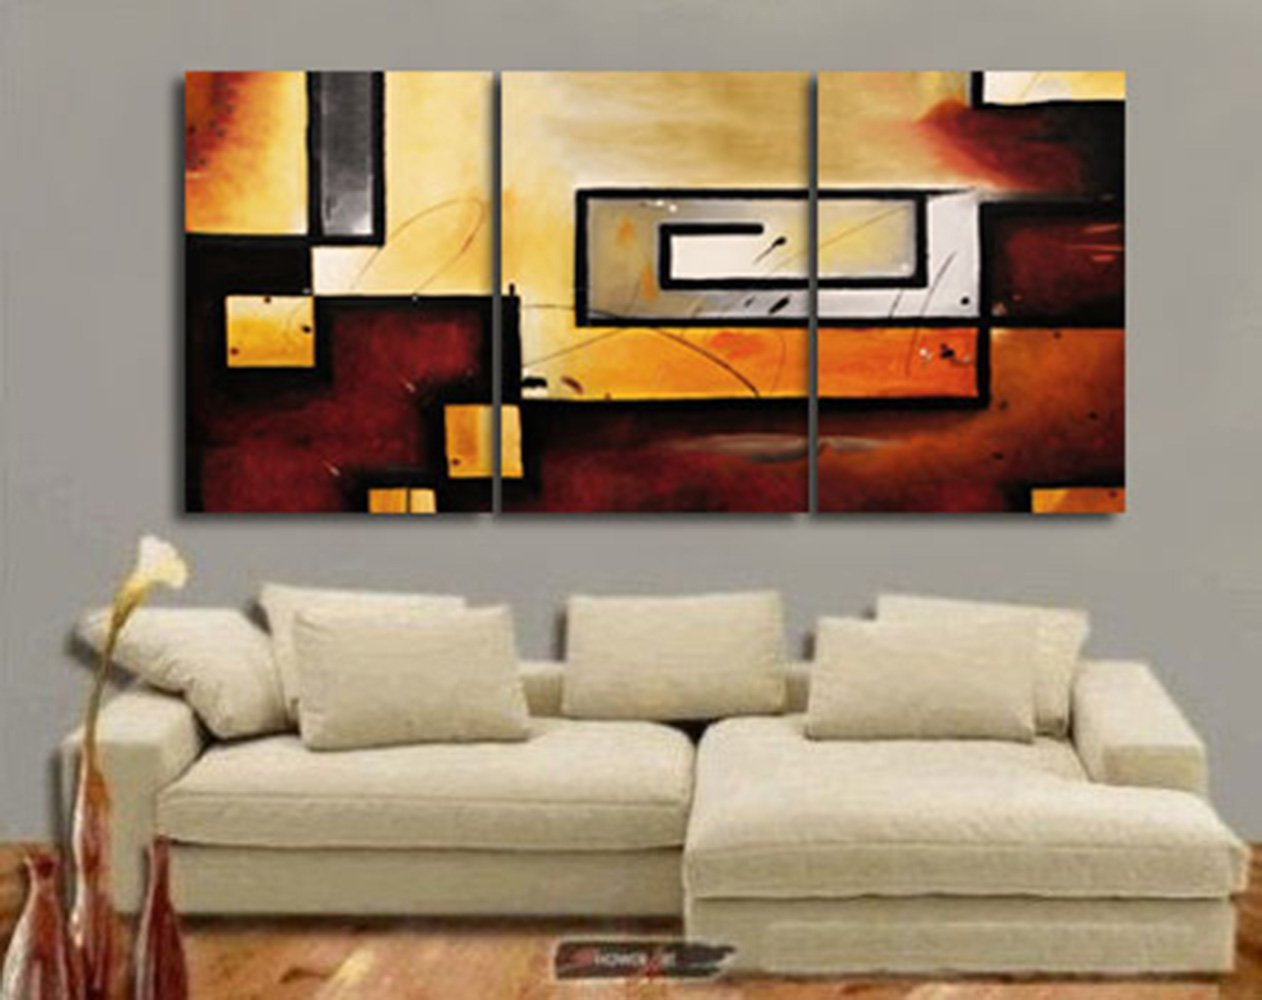 Marvelous Amazon.com: Art Wall Abstract Modern Gallery Wrapped Canvas Art By Jim  Morana, 36 By 54 Inch: Oil Paintings: Posters U0026 Prints